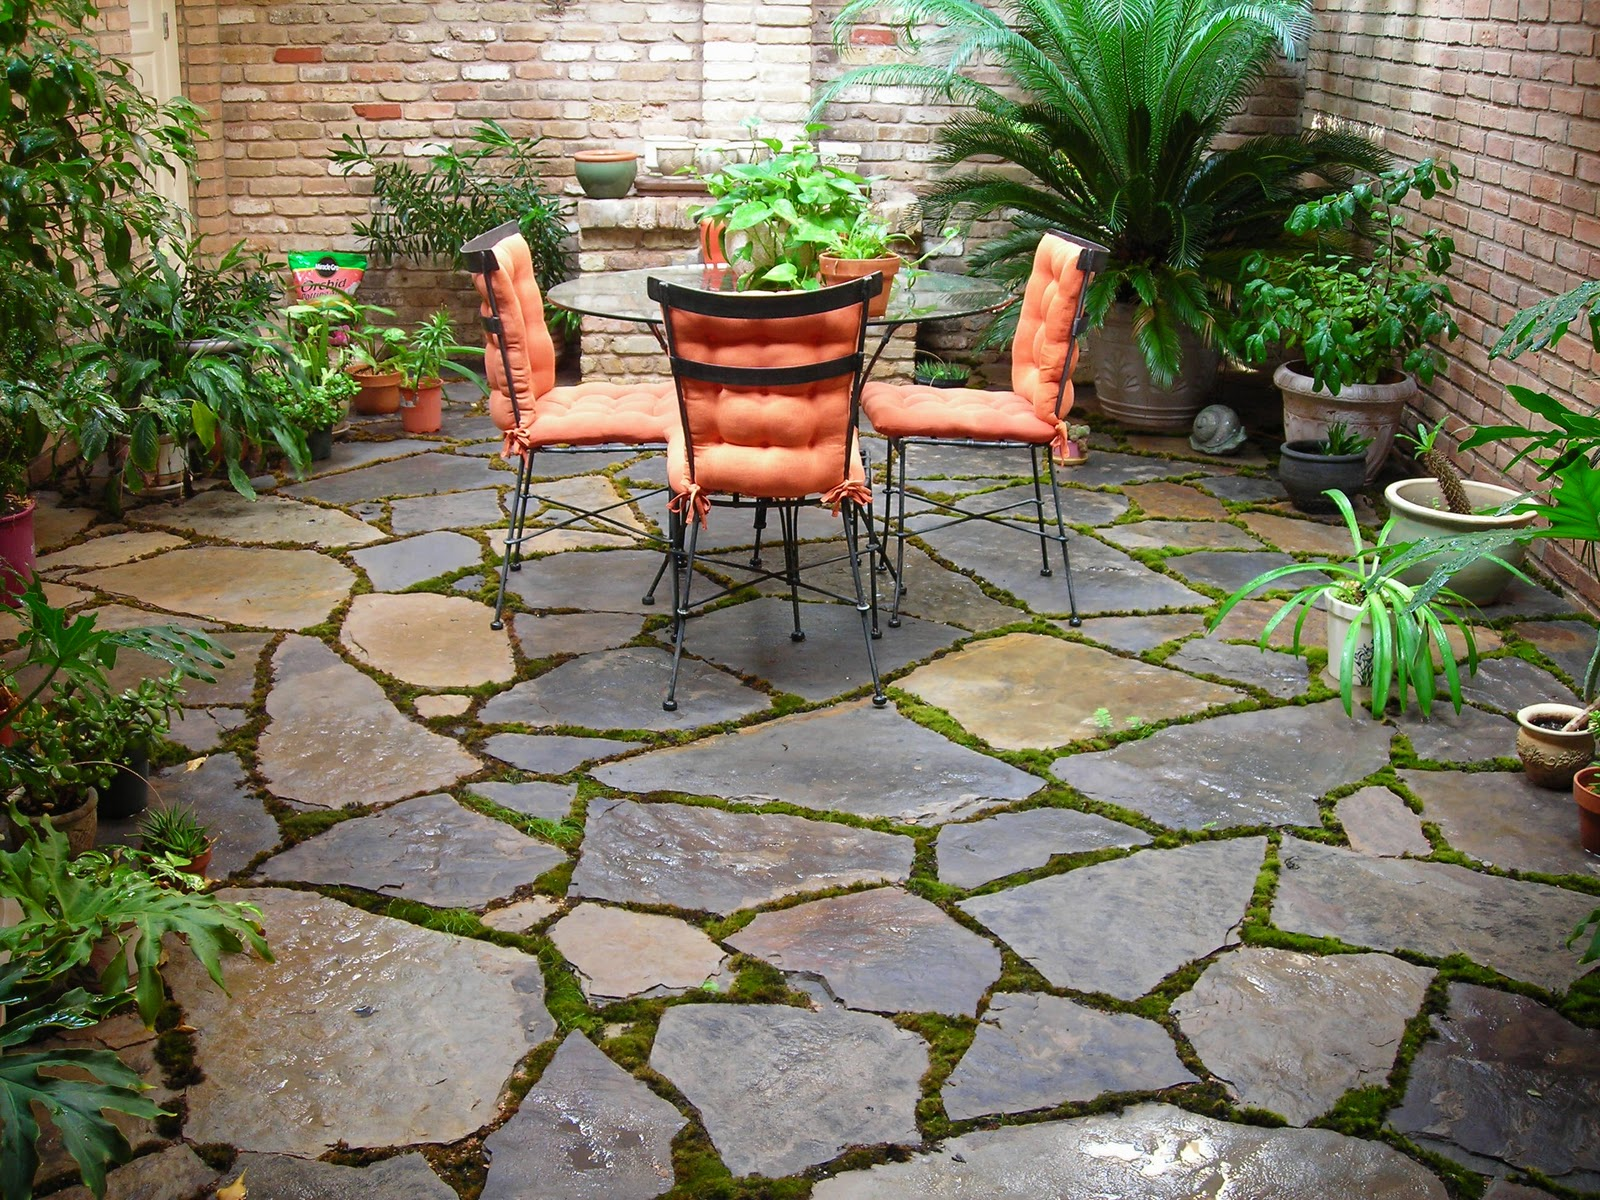 outdoor small backyard landscaping ideas with installing flagstone patio  stone backyard patio garden decor ideas WAXOXJK